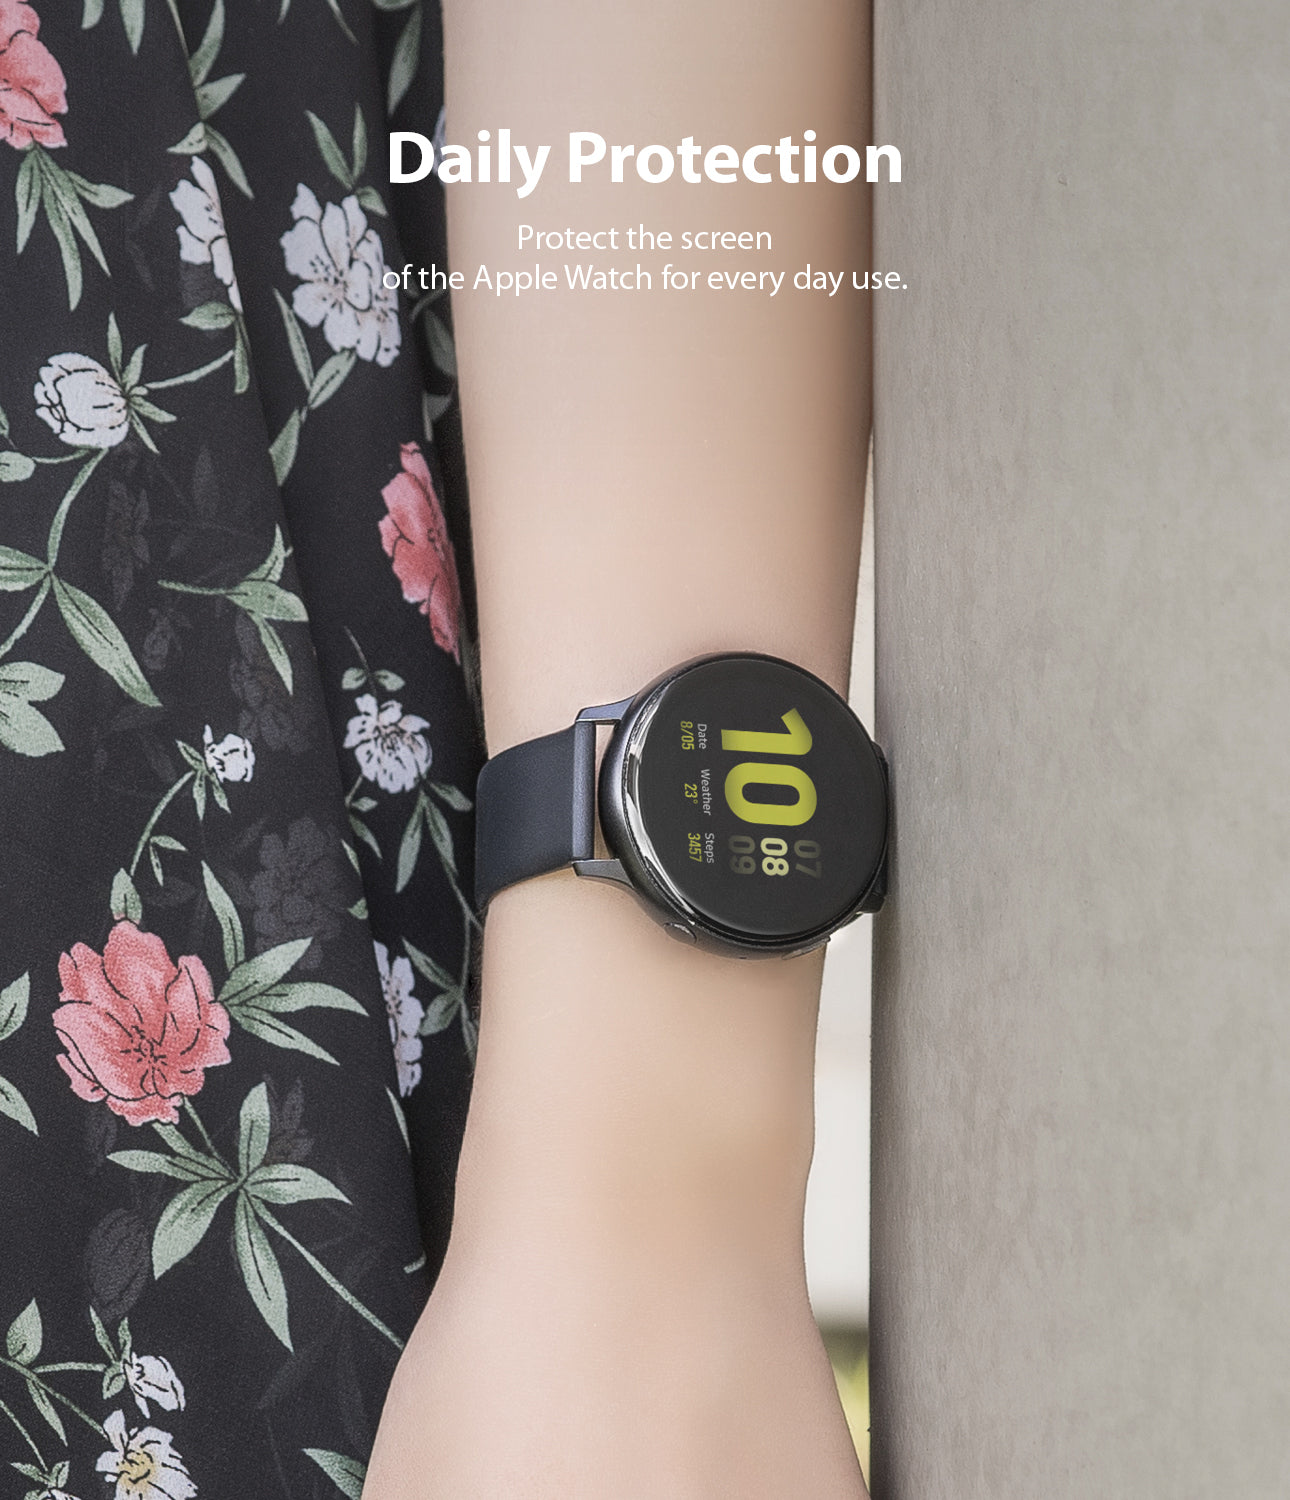 daily protection - protect the screen of the apple watch for everyday use